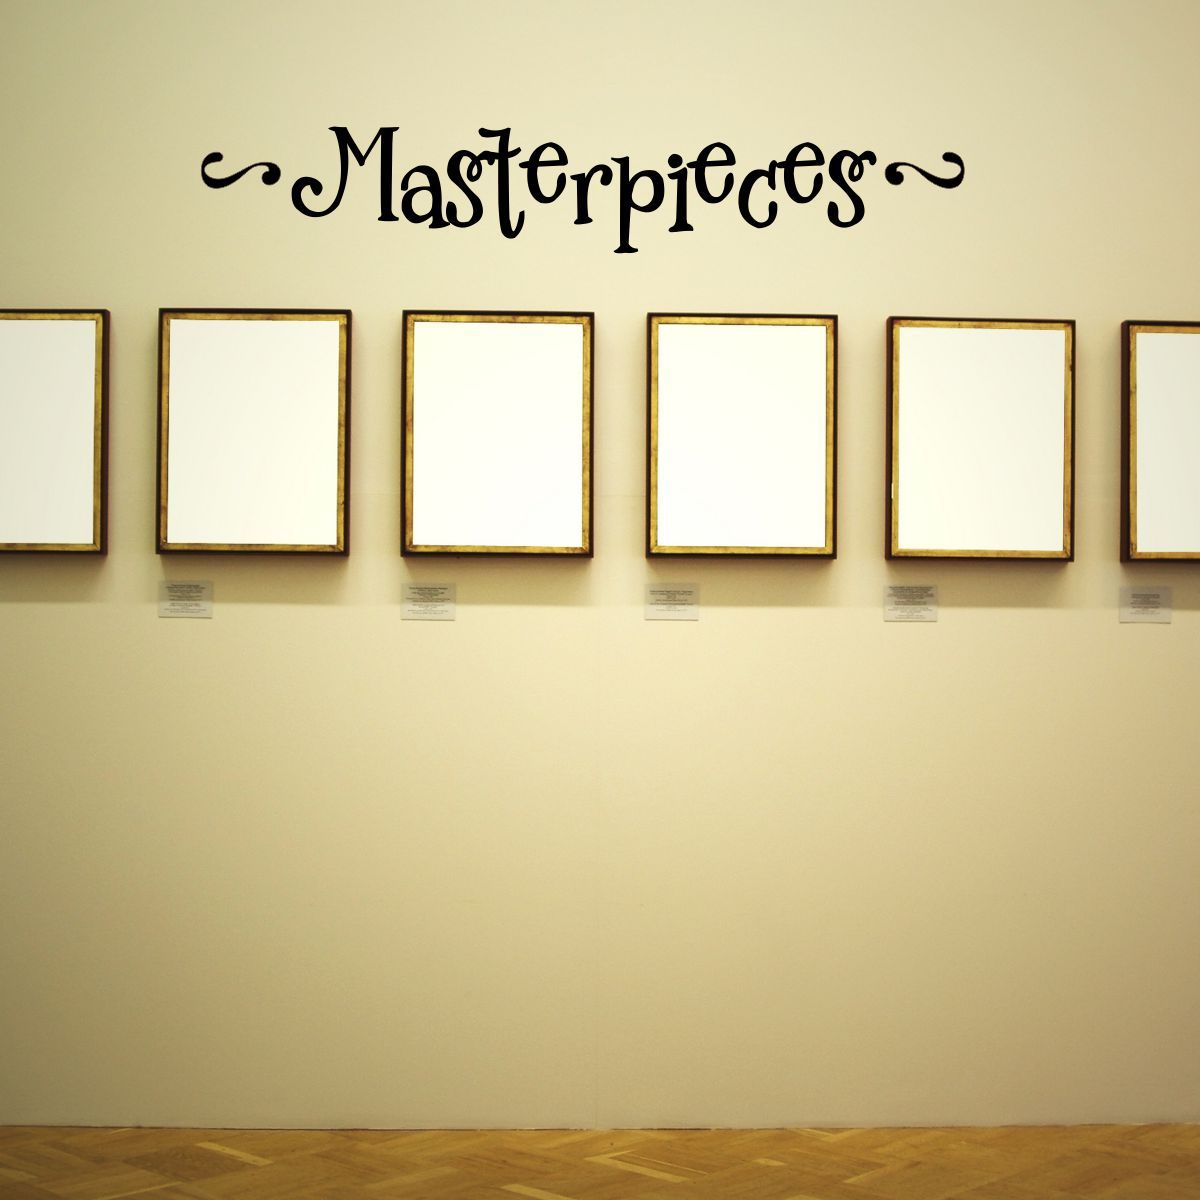 masterpiece wall decal | masterpieces overstock wall quotes decal ...